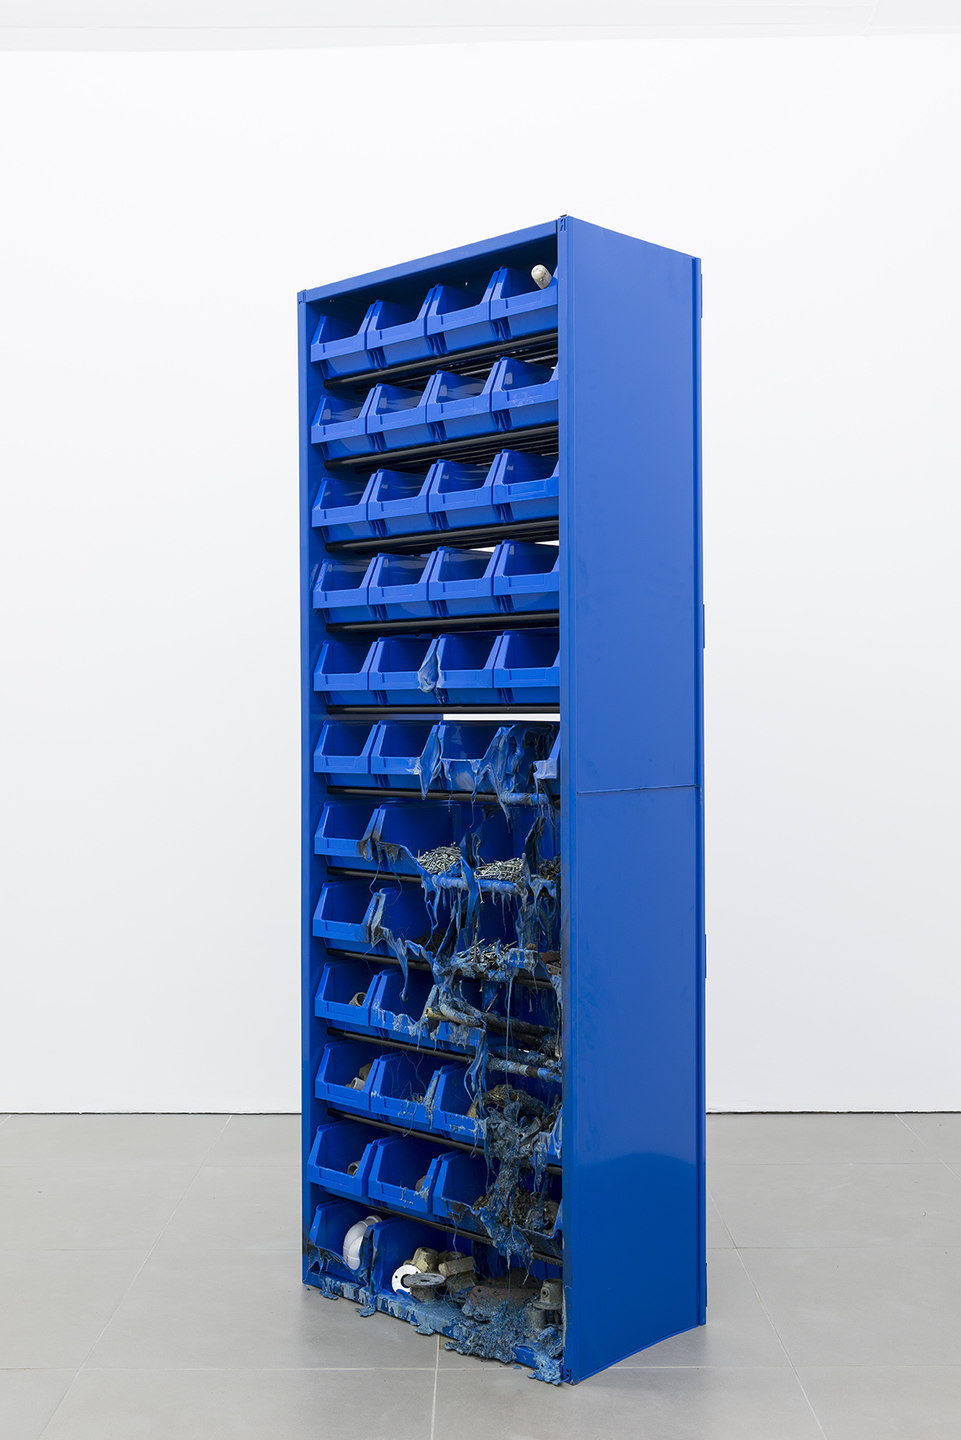 Matias Faldbakken, Parts Cabinet, 2013, Cell Project Space